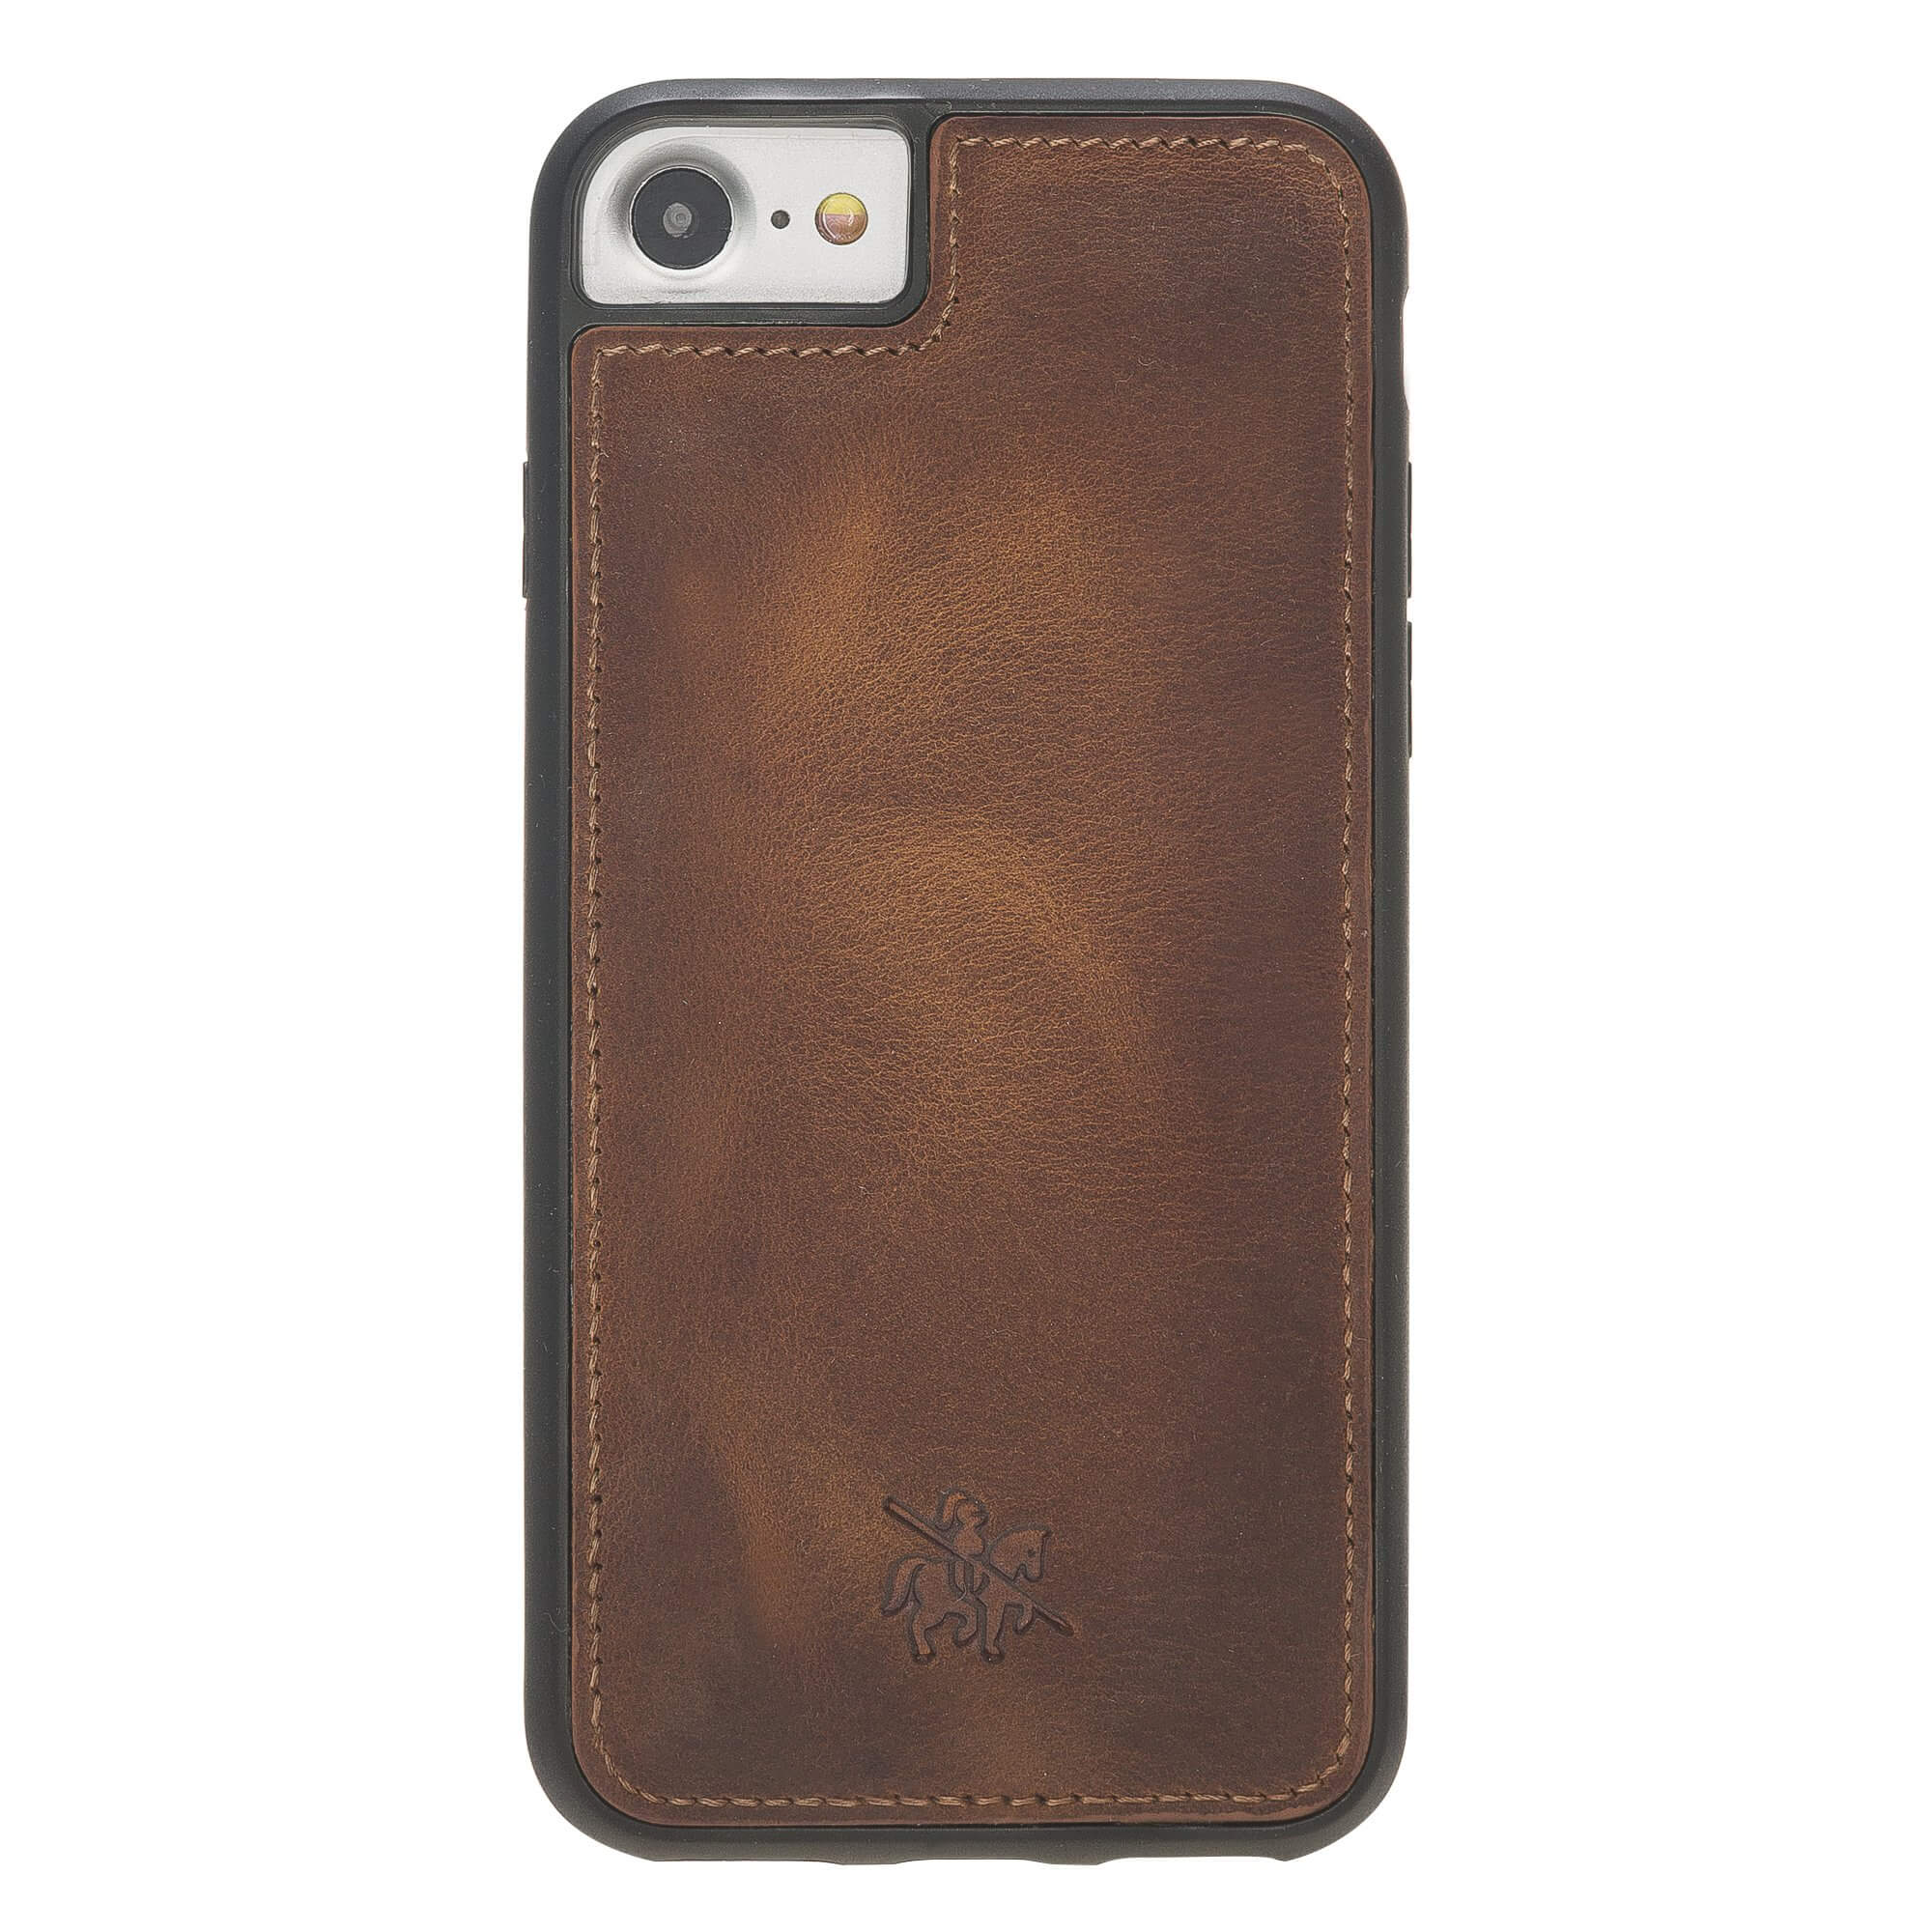 Lucca Snap On Leather Case for iPhone SE 2020